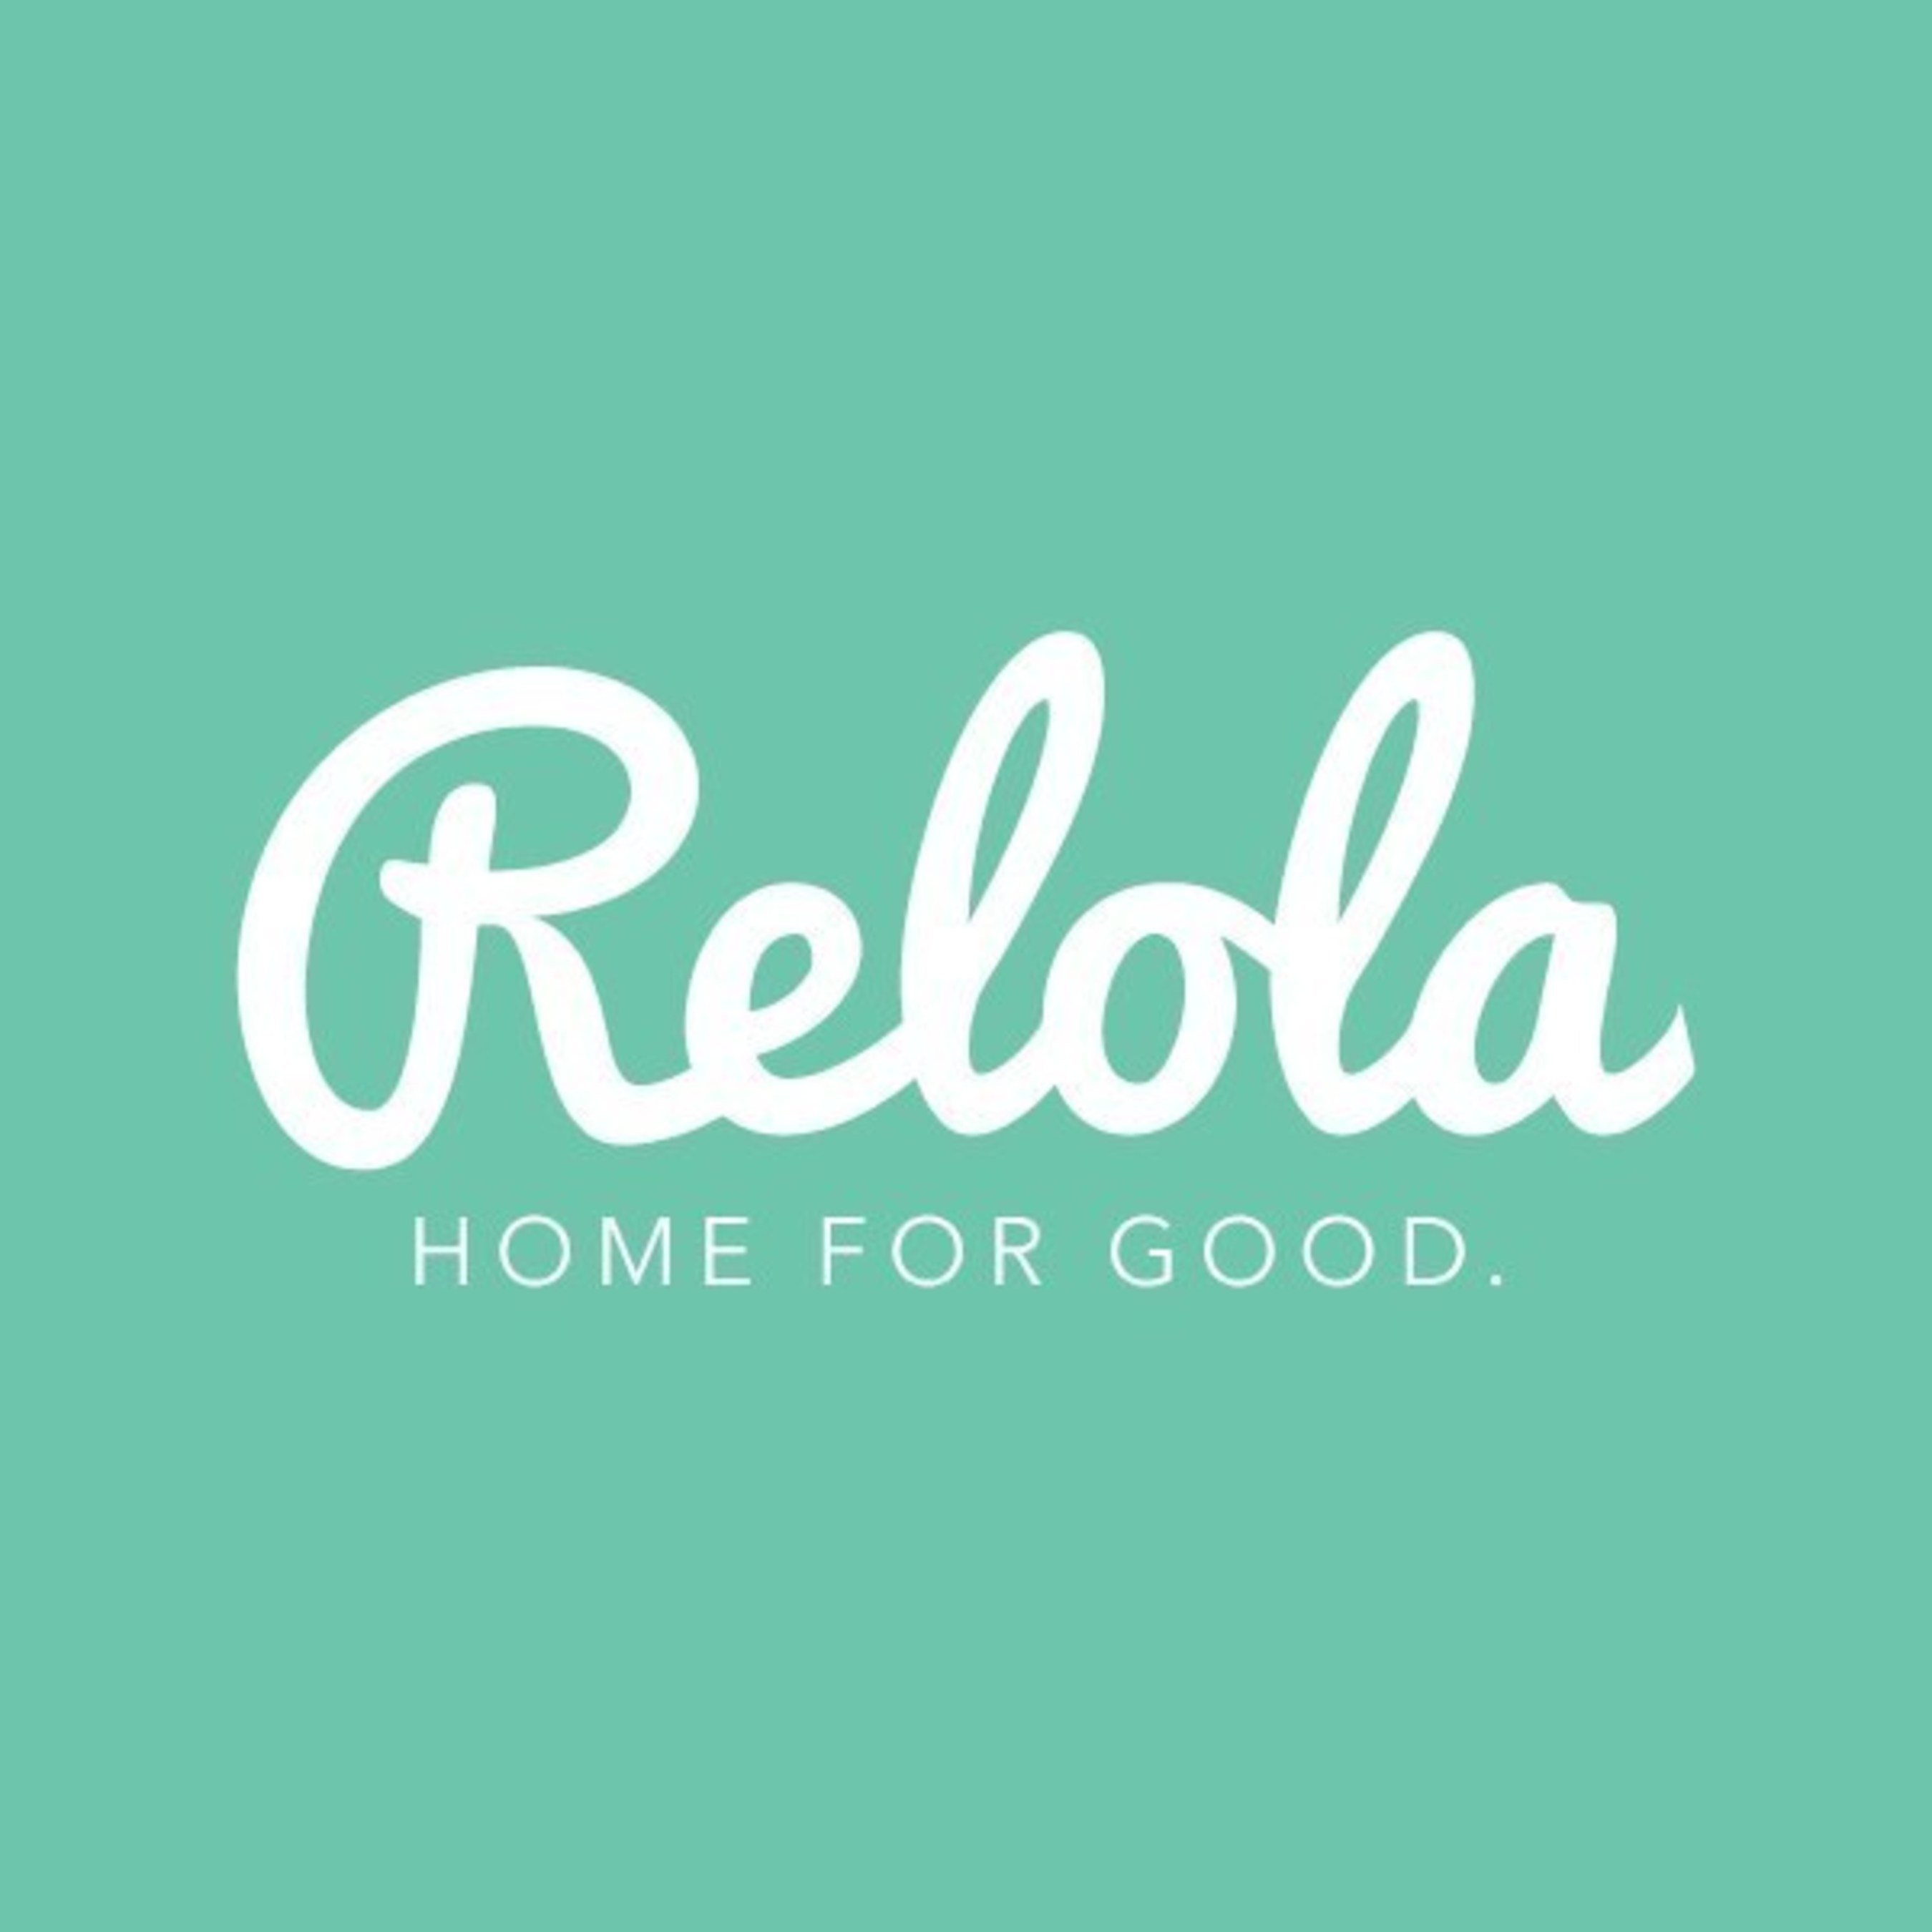 Relola.com Shakes Up Online Real Estate Searches